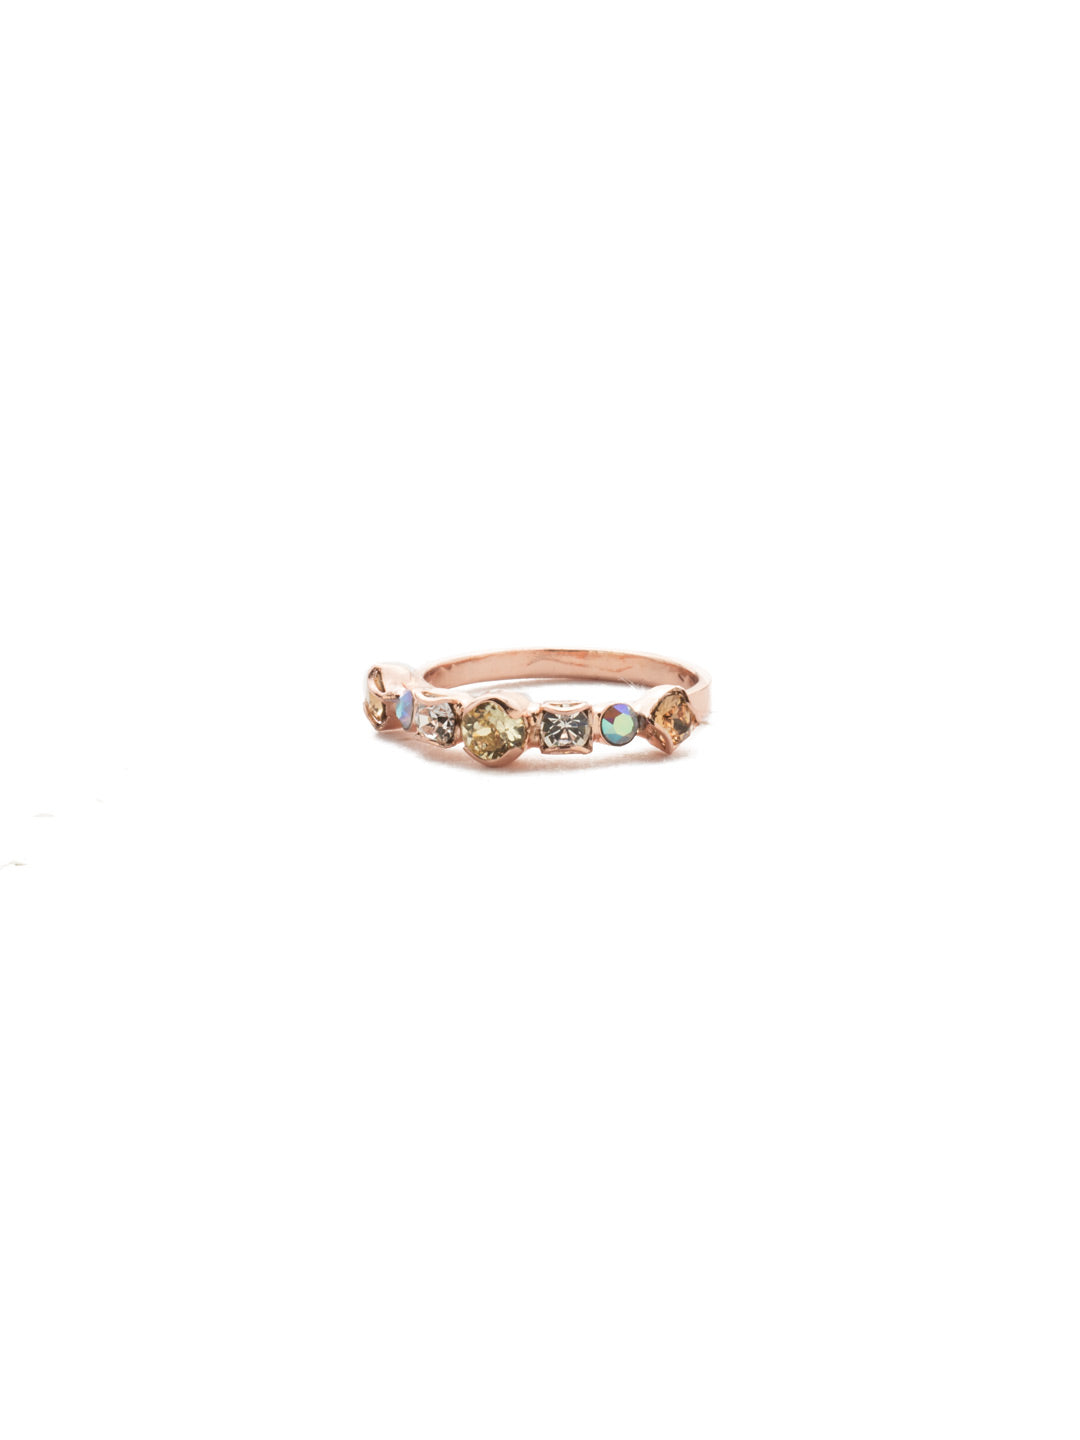 Angelina Band Ring - REN21RGROG